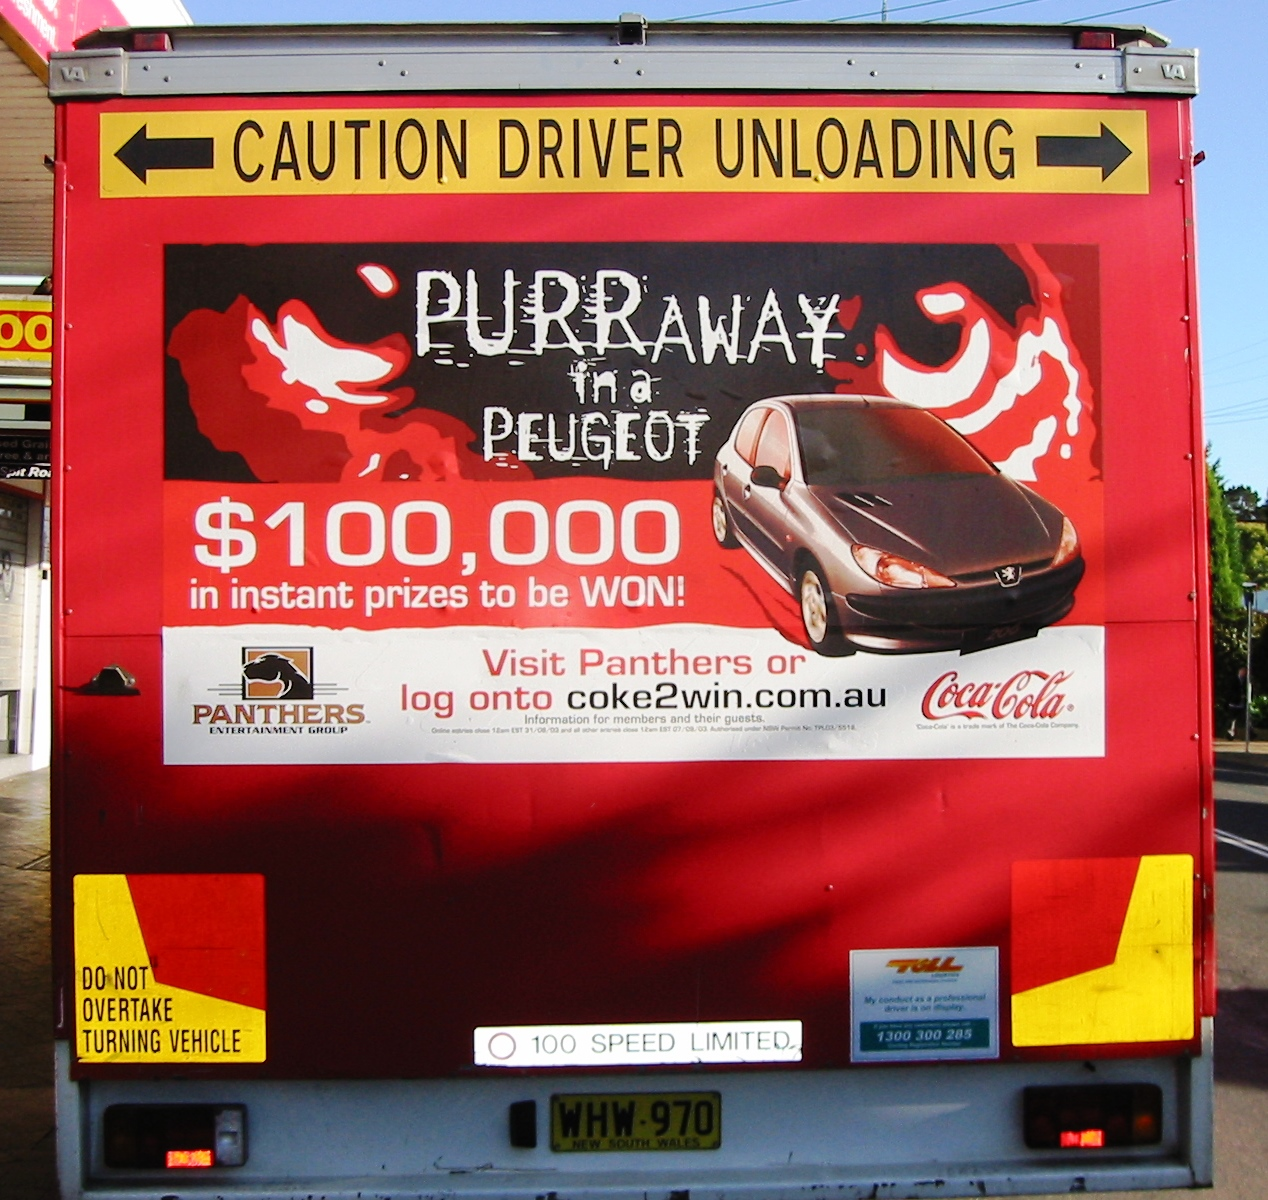 Fleet graphics. TruckBacks. Coca Cola. CCA. Peugeot Panthers Entertainment Group Promotion. CocaCola South Pacific. Toll. Flatback. Artarmon.